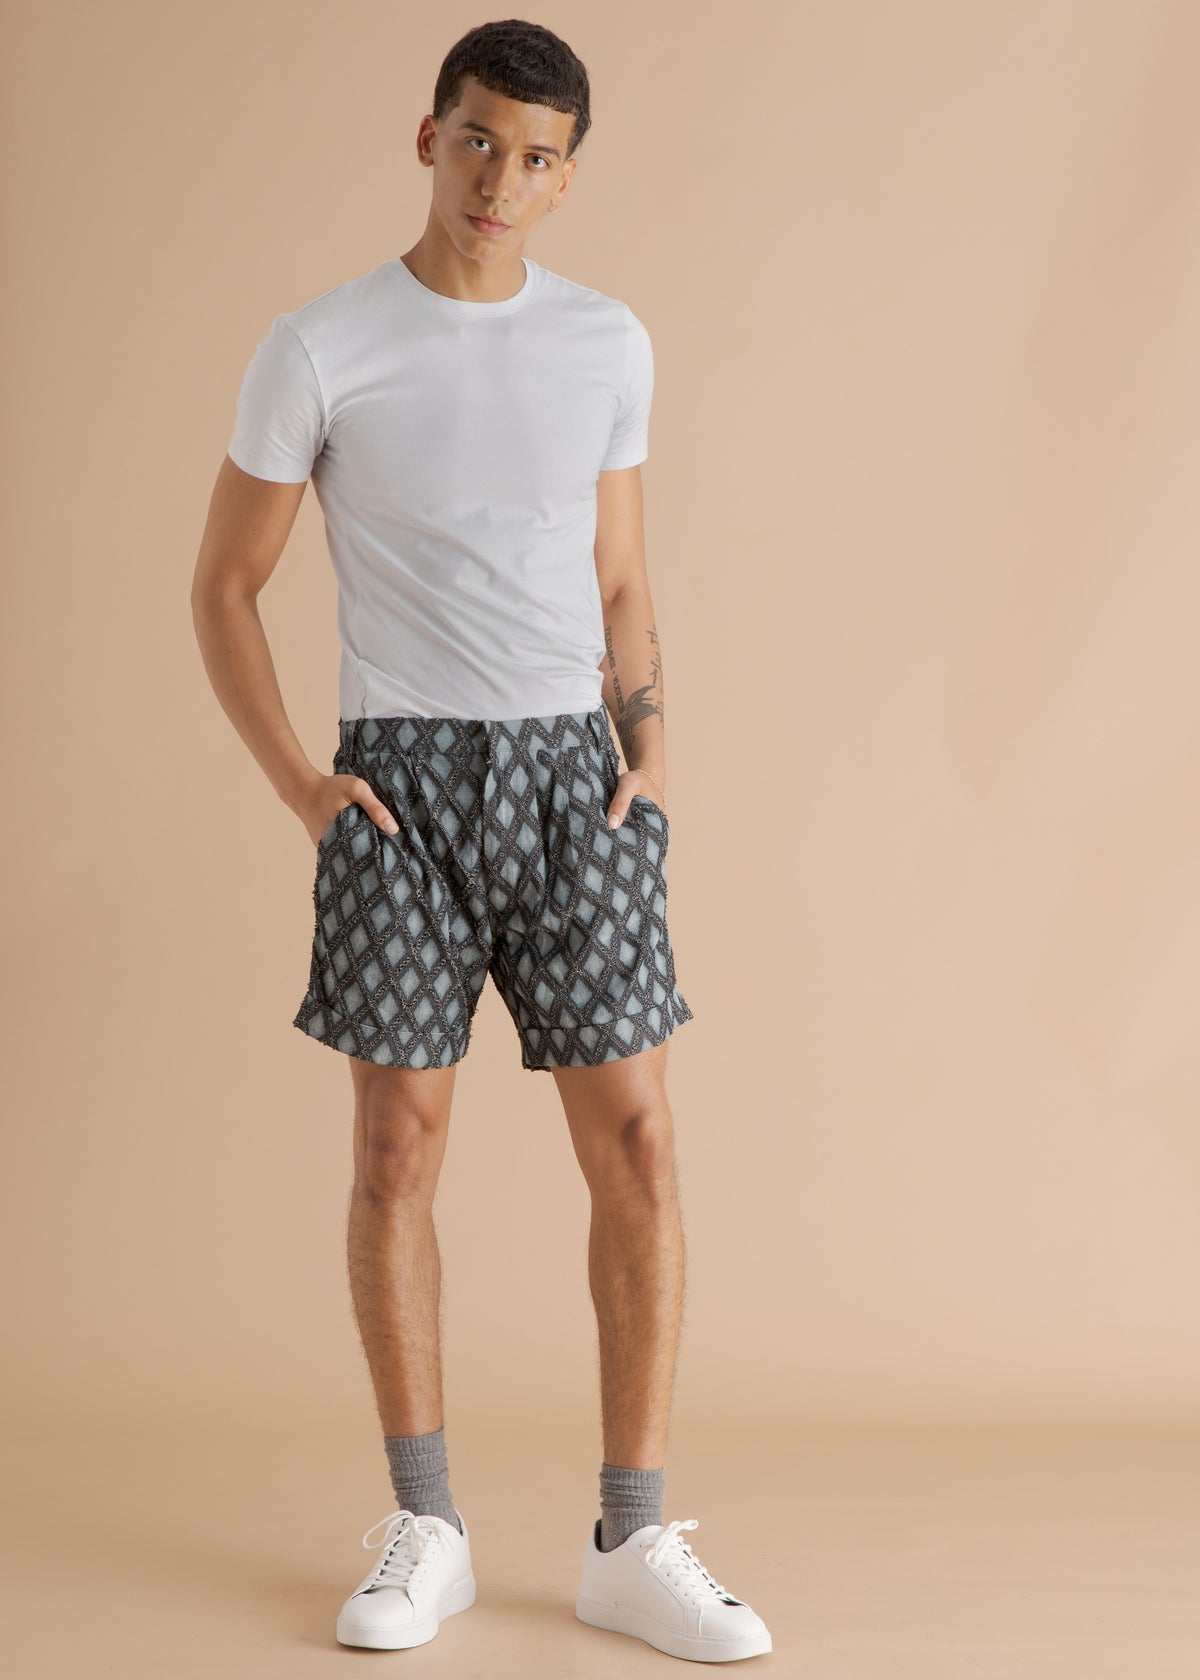 Nicholas Coutts blue printed diamond shorts